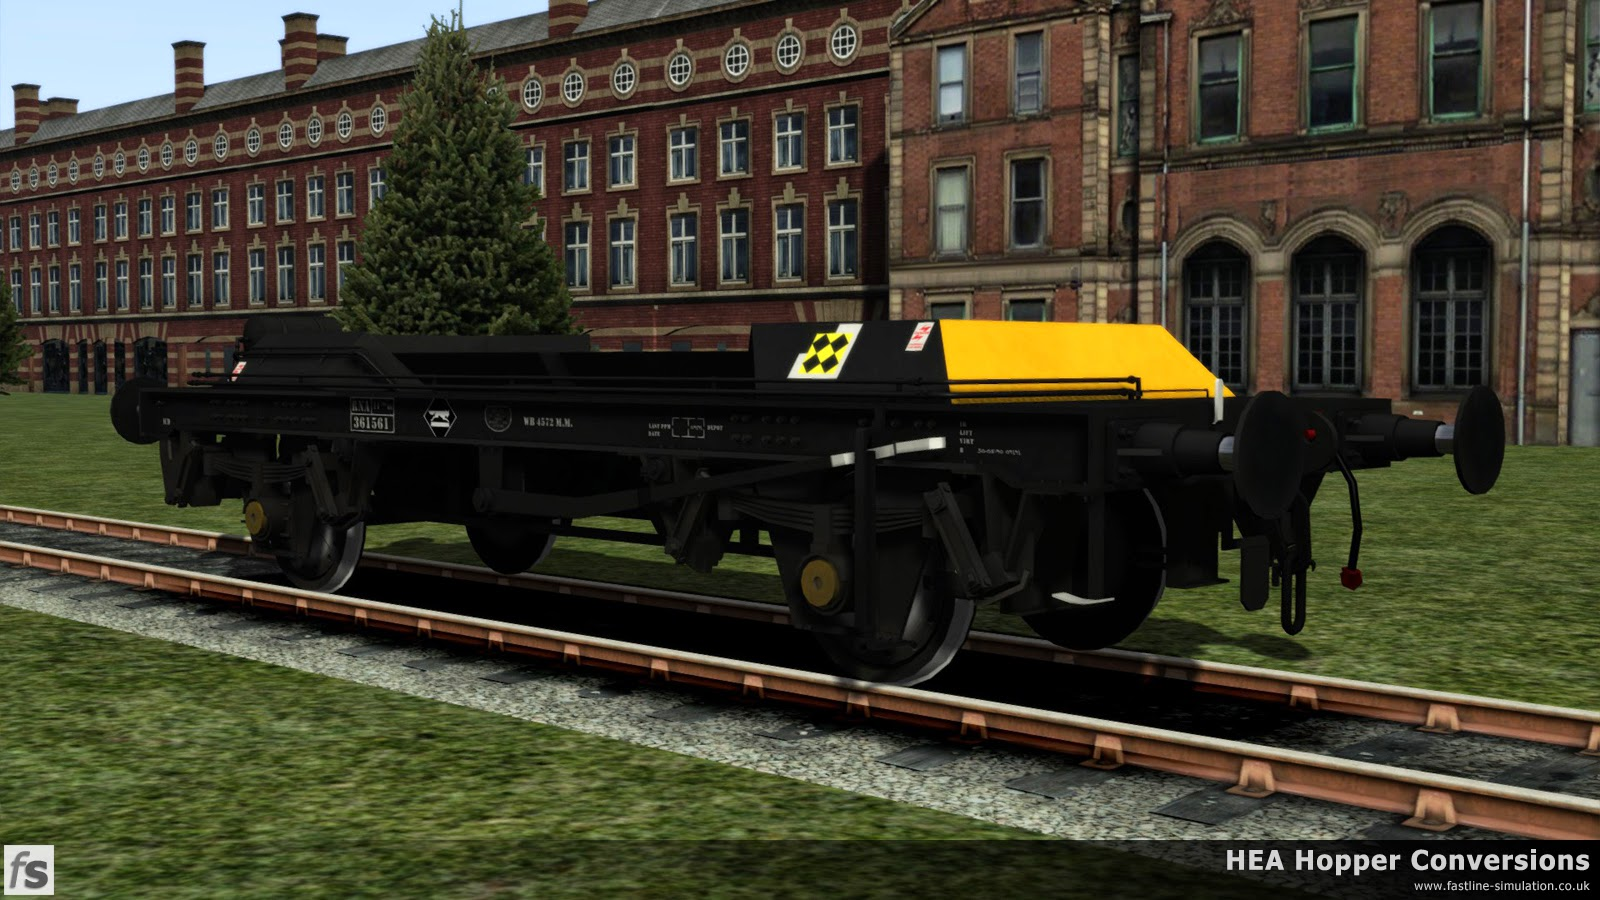 Fastline Simulation - HEA Conversions: RNA barrier wagon with the hopper body removed in Railfreight Coal livery. The pipe runs above the underframe meant that a standard TOPS data panel would be obstructed and some creativity had to take place when adding it to the underframe.